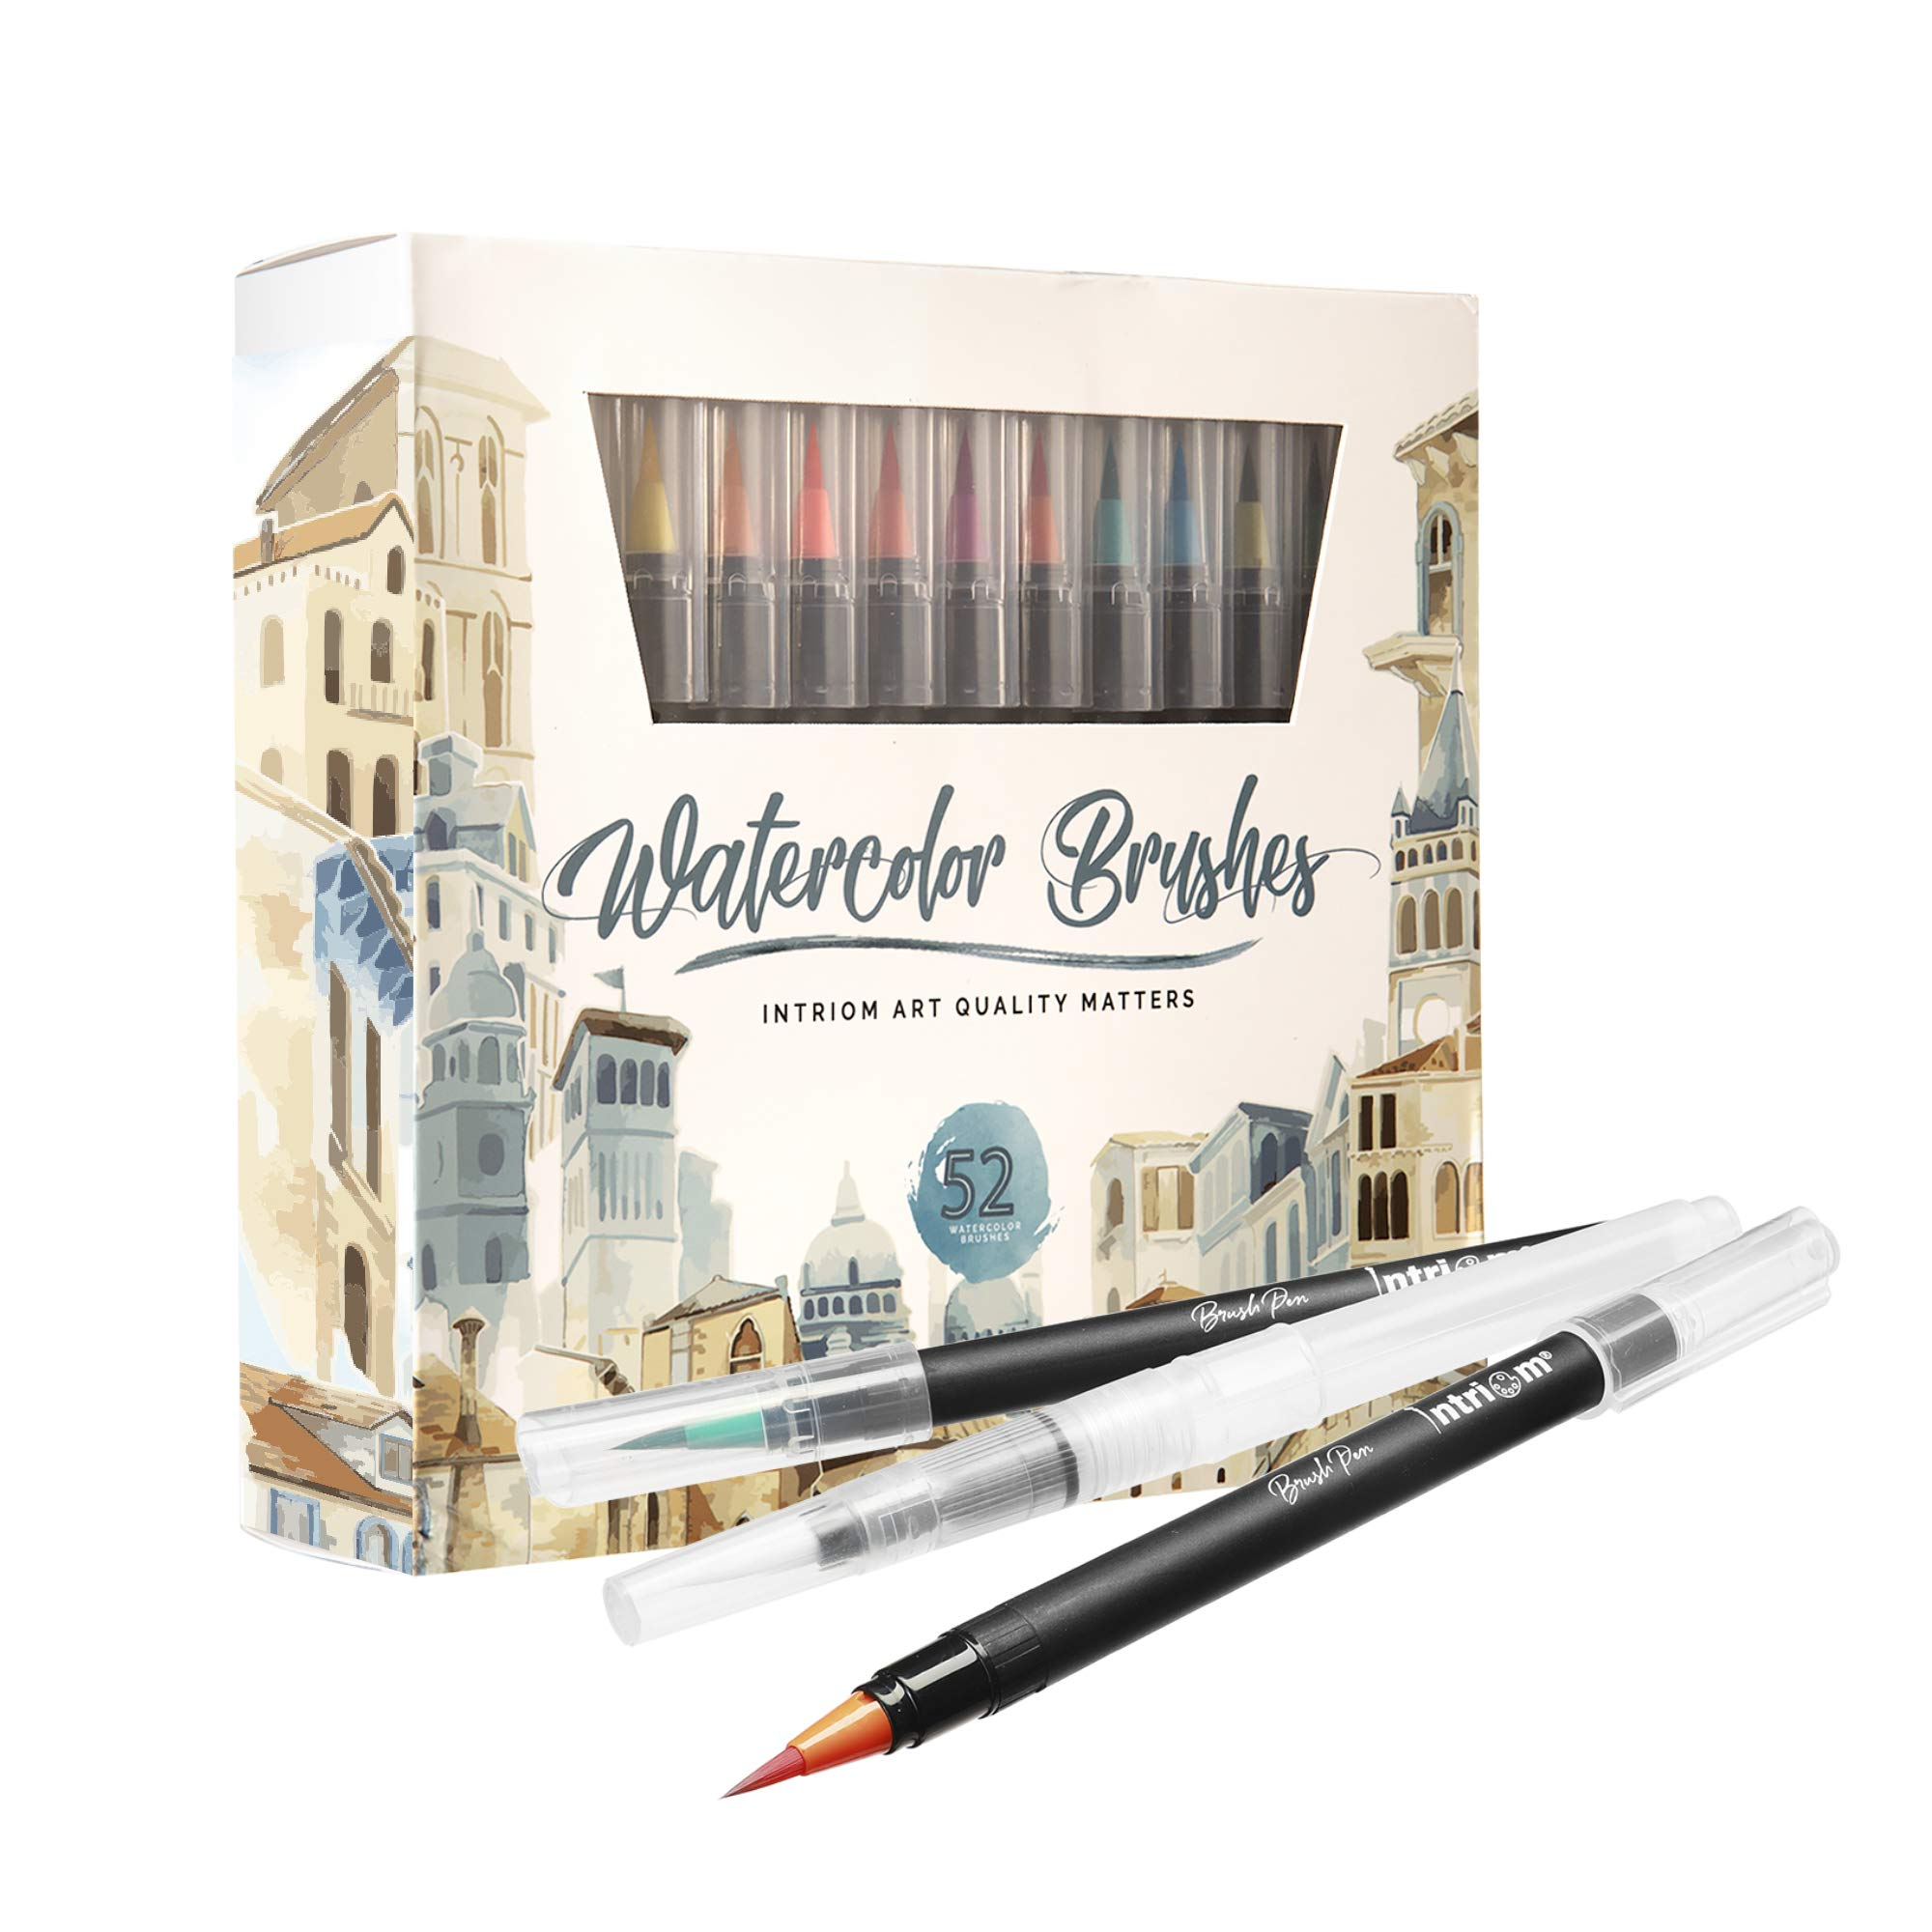 Watercolor Brush Pens Assorted Set | Colored + 3 Watercolor Brush Pens +8 Watercolor Paper | Complete Art Supply Coloring & Inking Markers W/Real Brush Tips & Carrying Case | Nontoxic (52) by Intriom